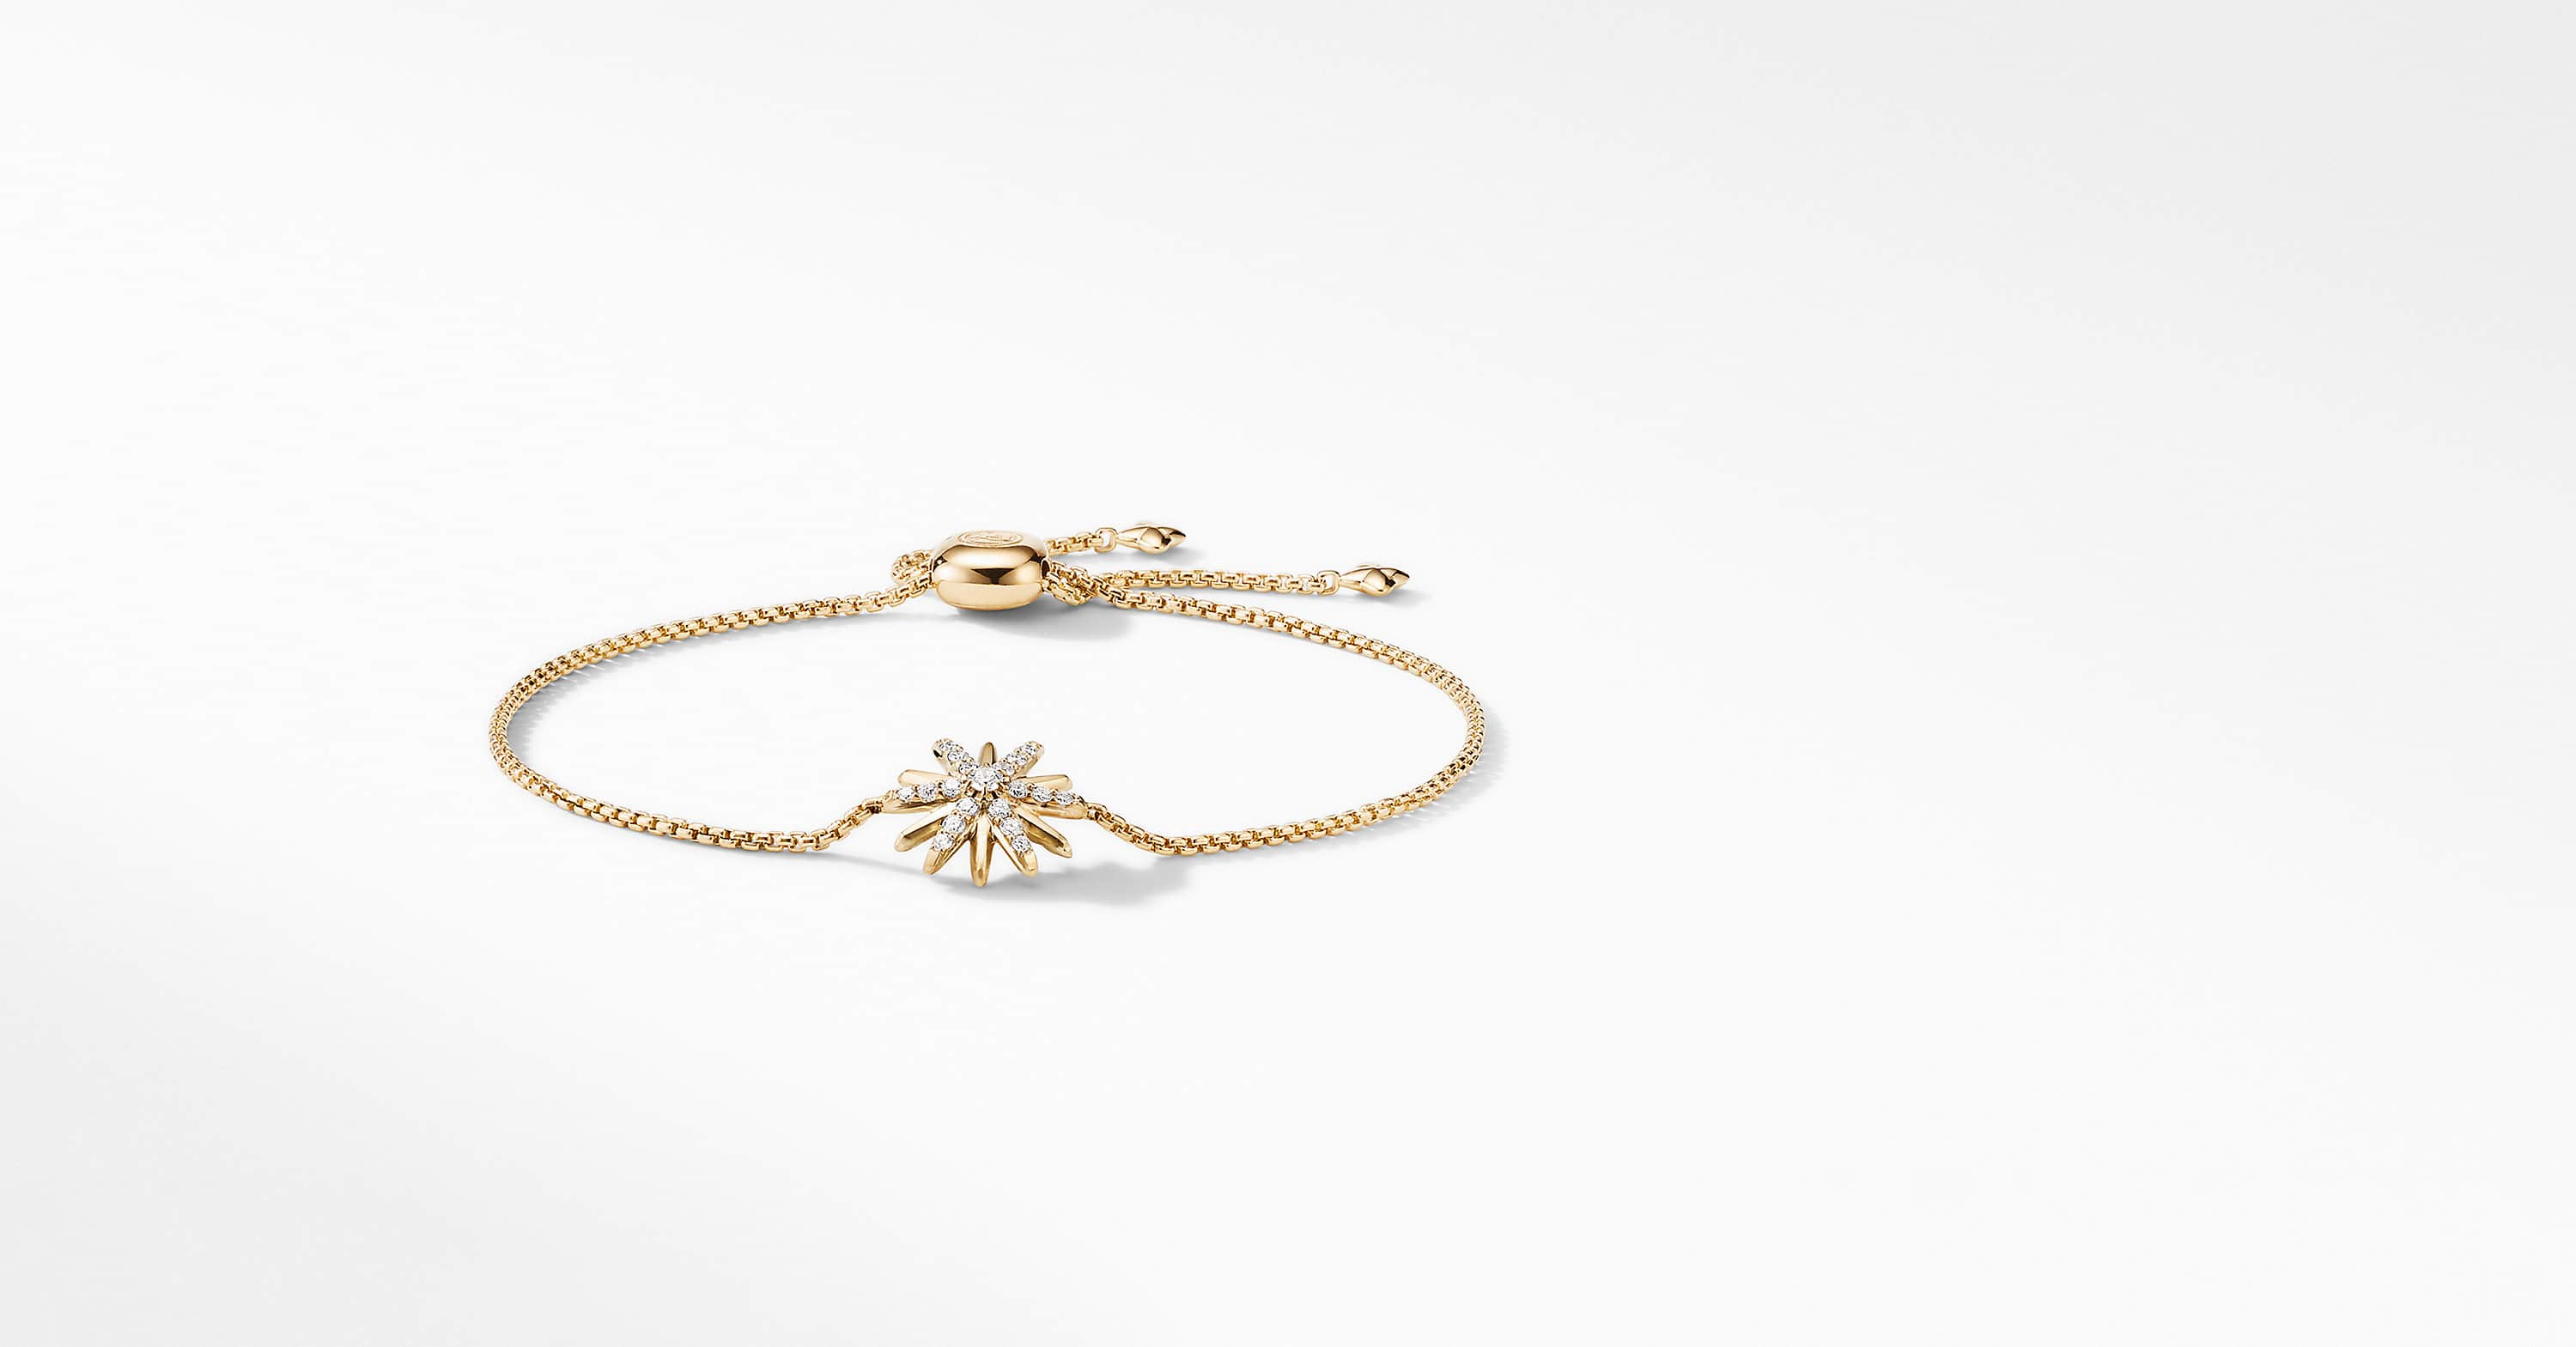 Starburst Station Chain Bracelet in 18K Yellow Gold with Diamonds